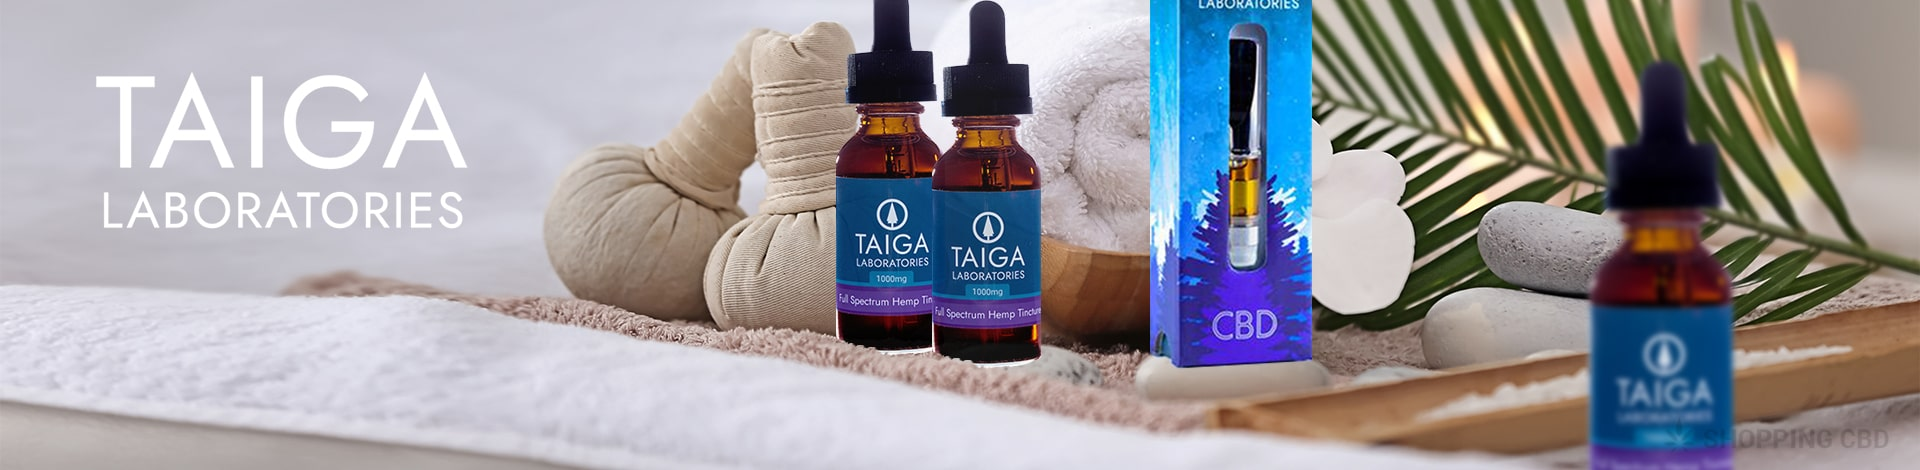 Tiaga Laboratories CBD